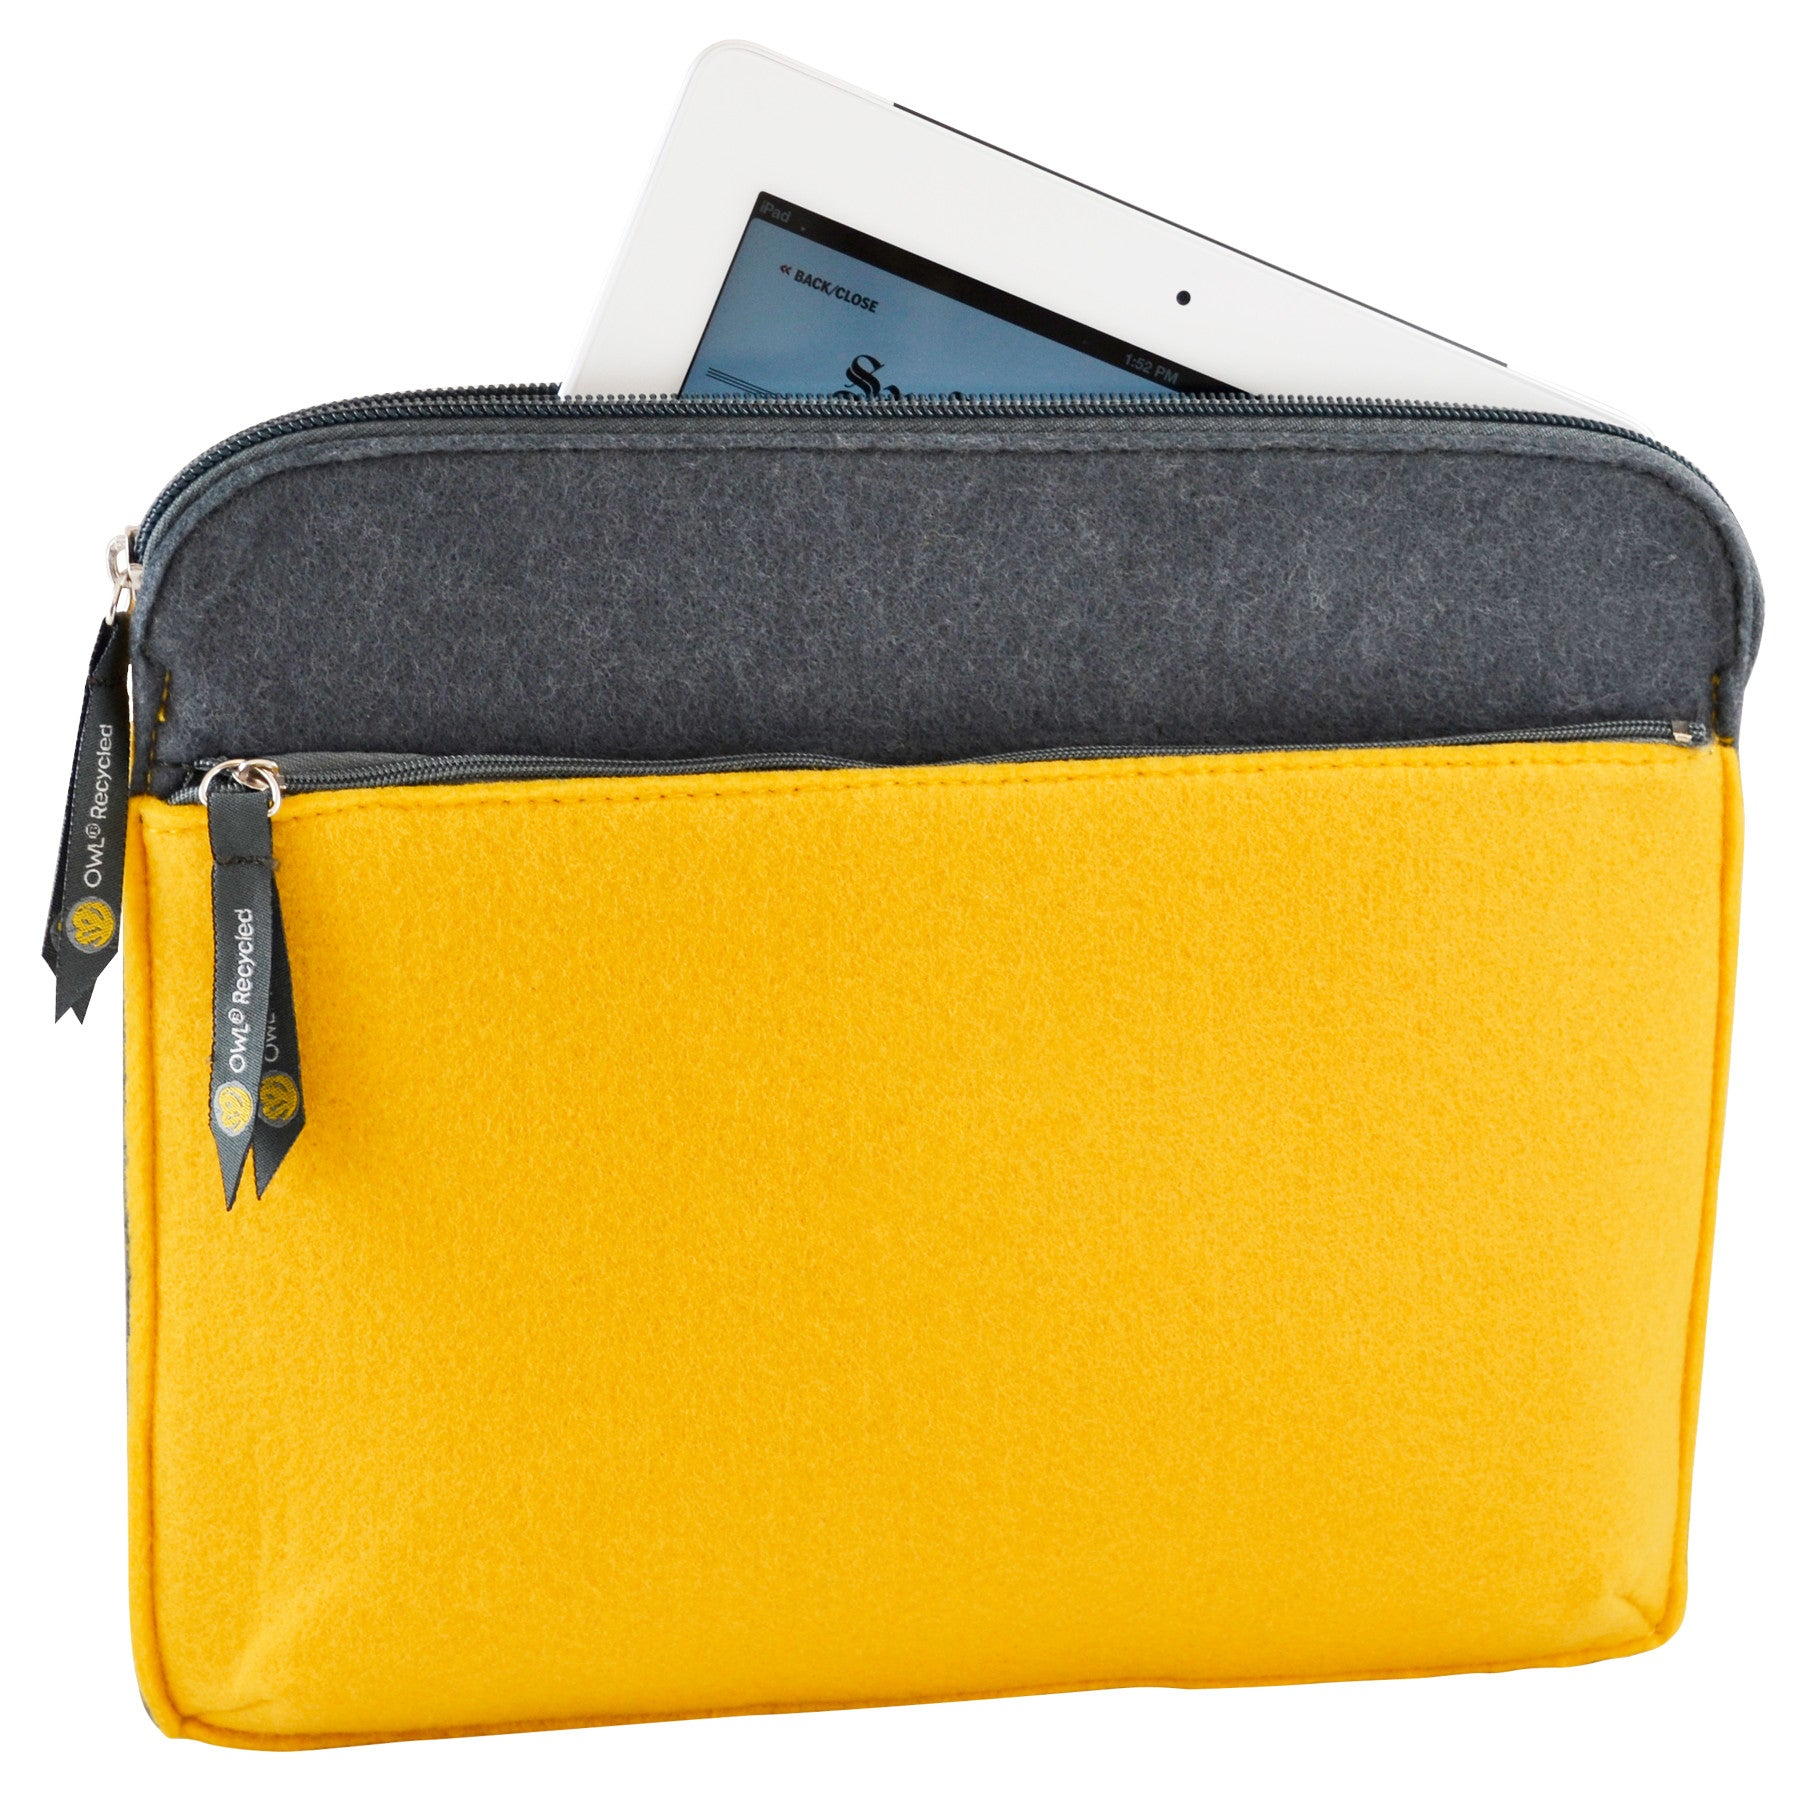 Felt iPad Case - Dandelion - 100% Recycled Water Bottles